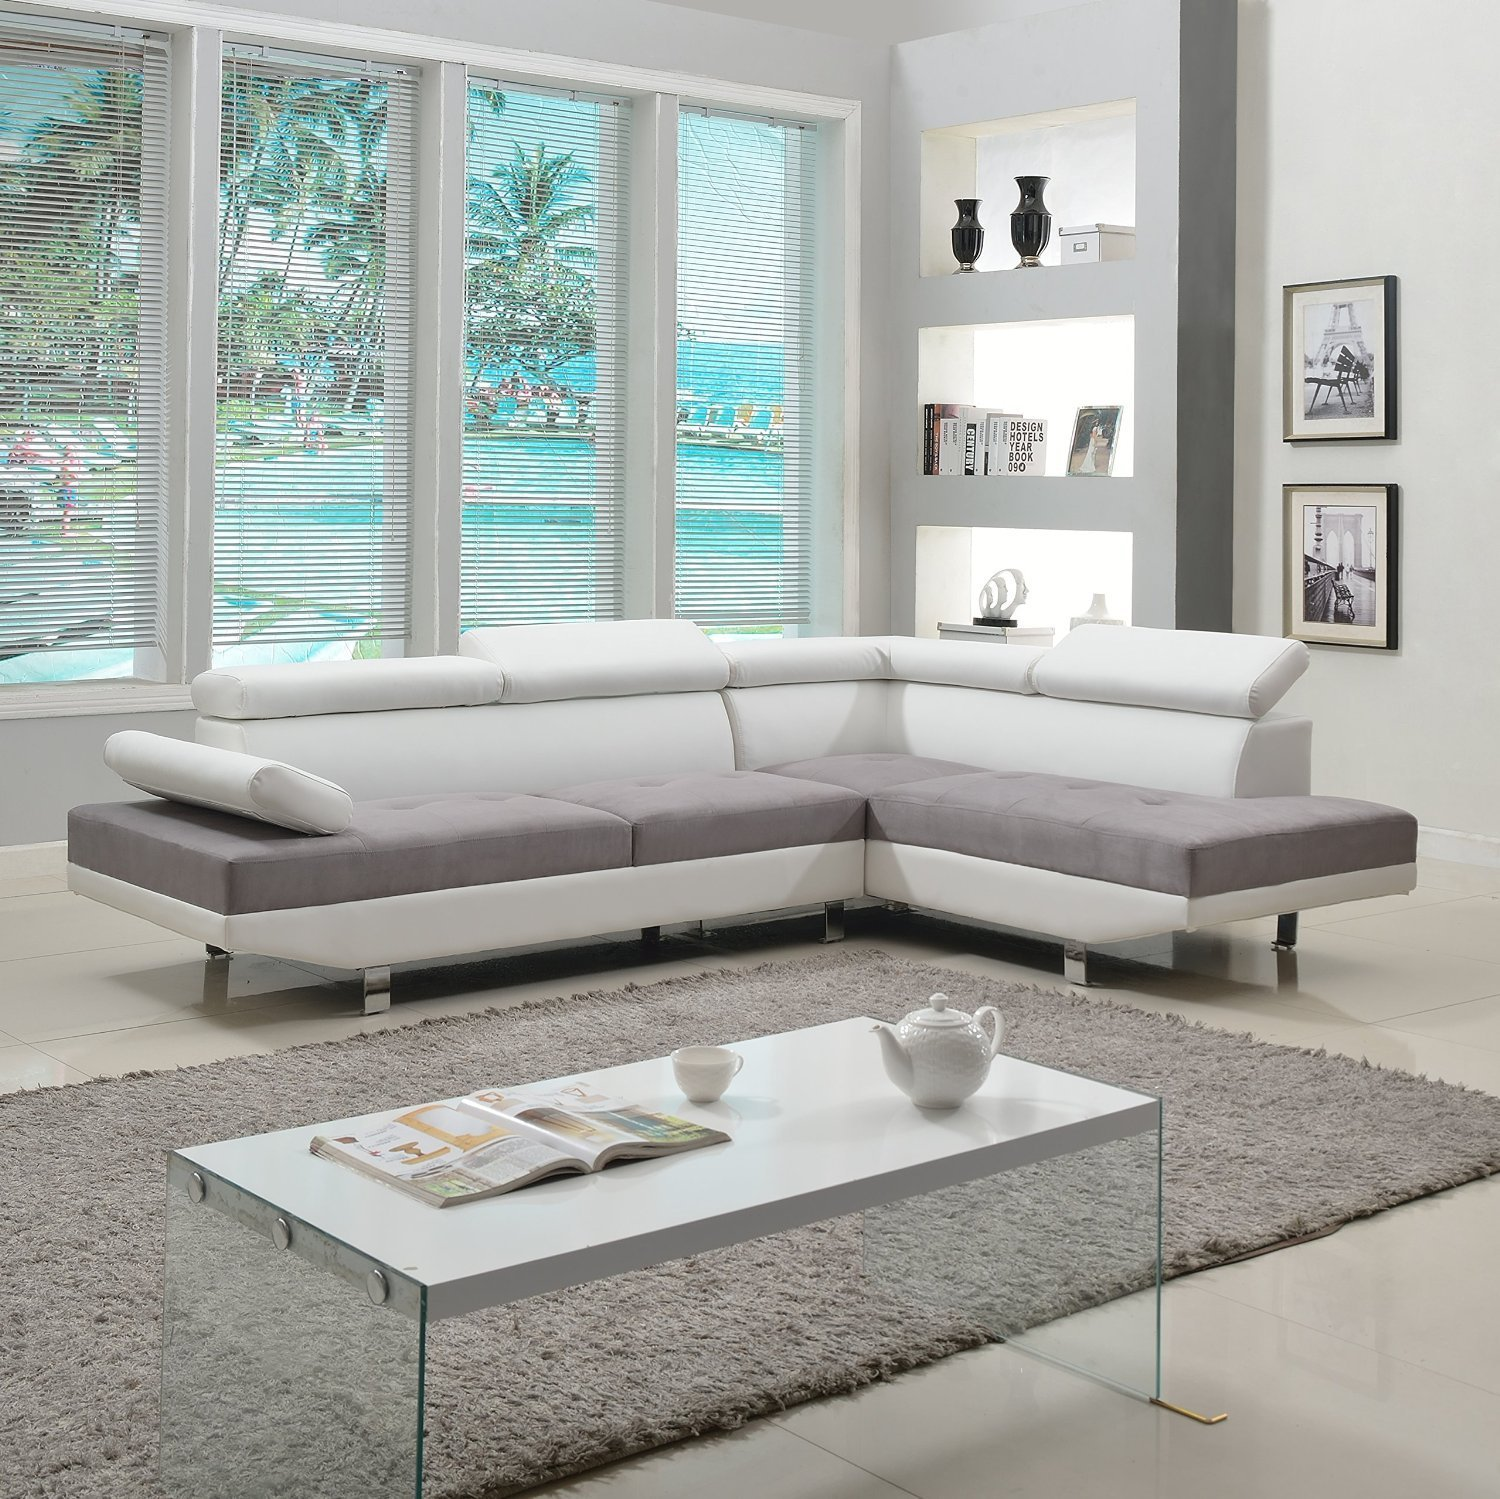 Modern living room furniture review find the best one for Modern furniture